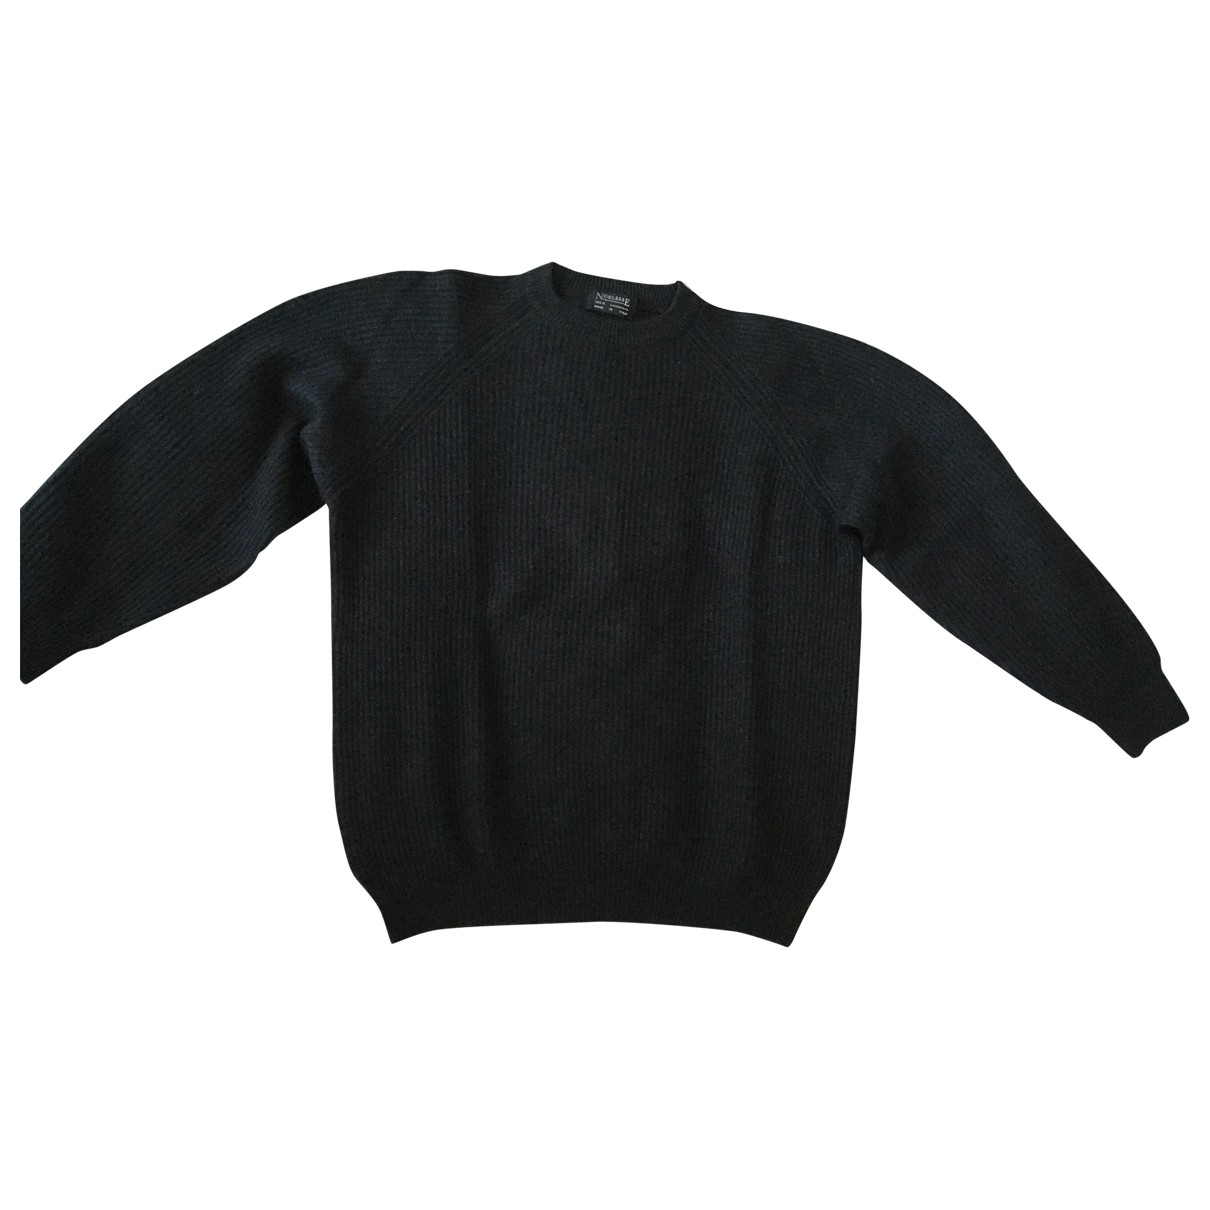 Non Signé / Unsigned \N Anthracite Cashmere Knitwear & Sweatshirts for Men XL International